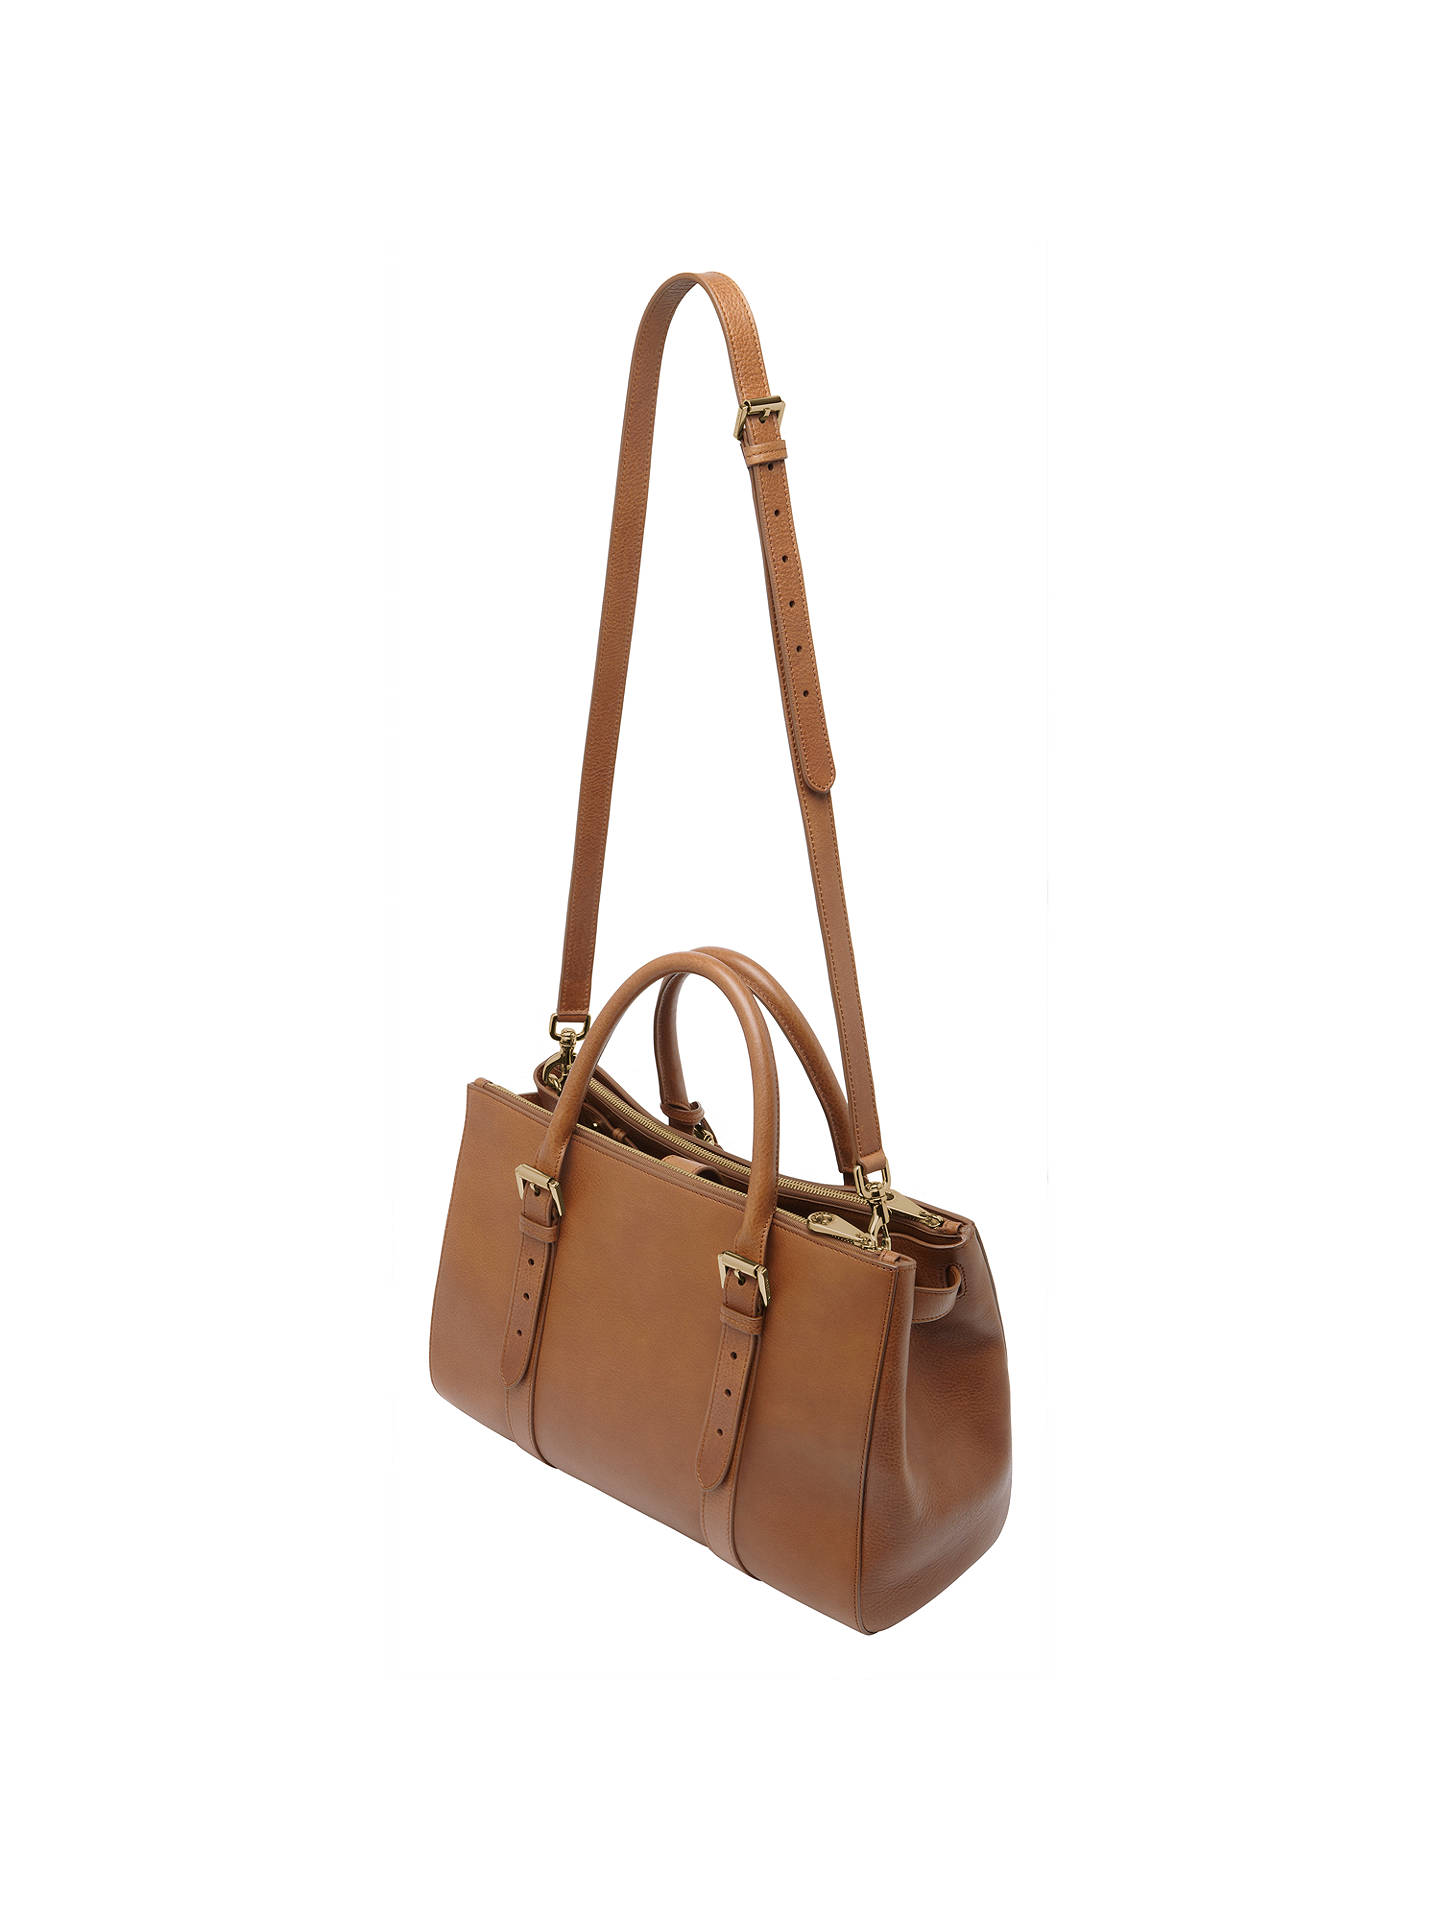 6667932b304 ... Buy Mulberry Bayswater Leather Double Zip Tote Bag, Oak Online at  johnlewis.com